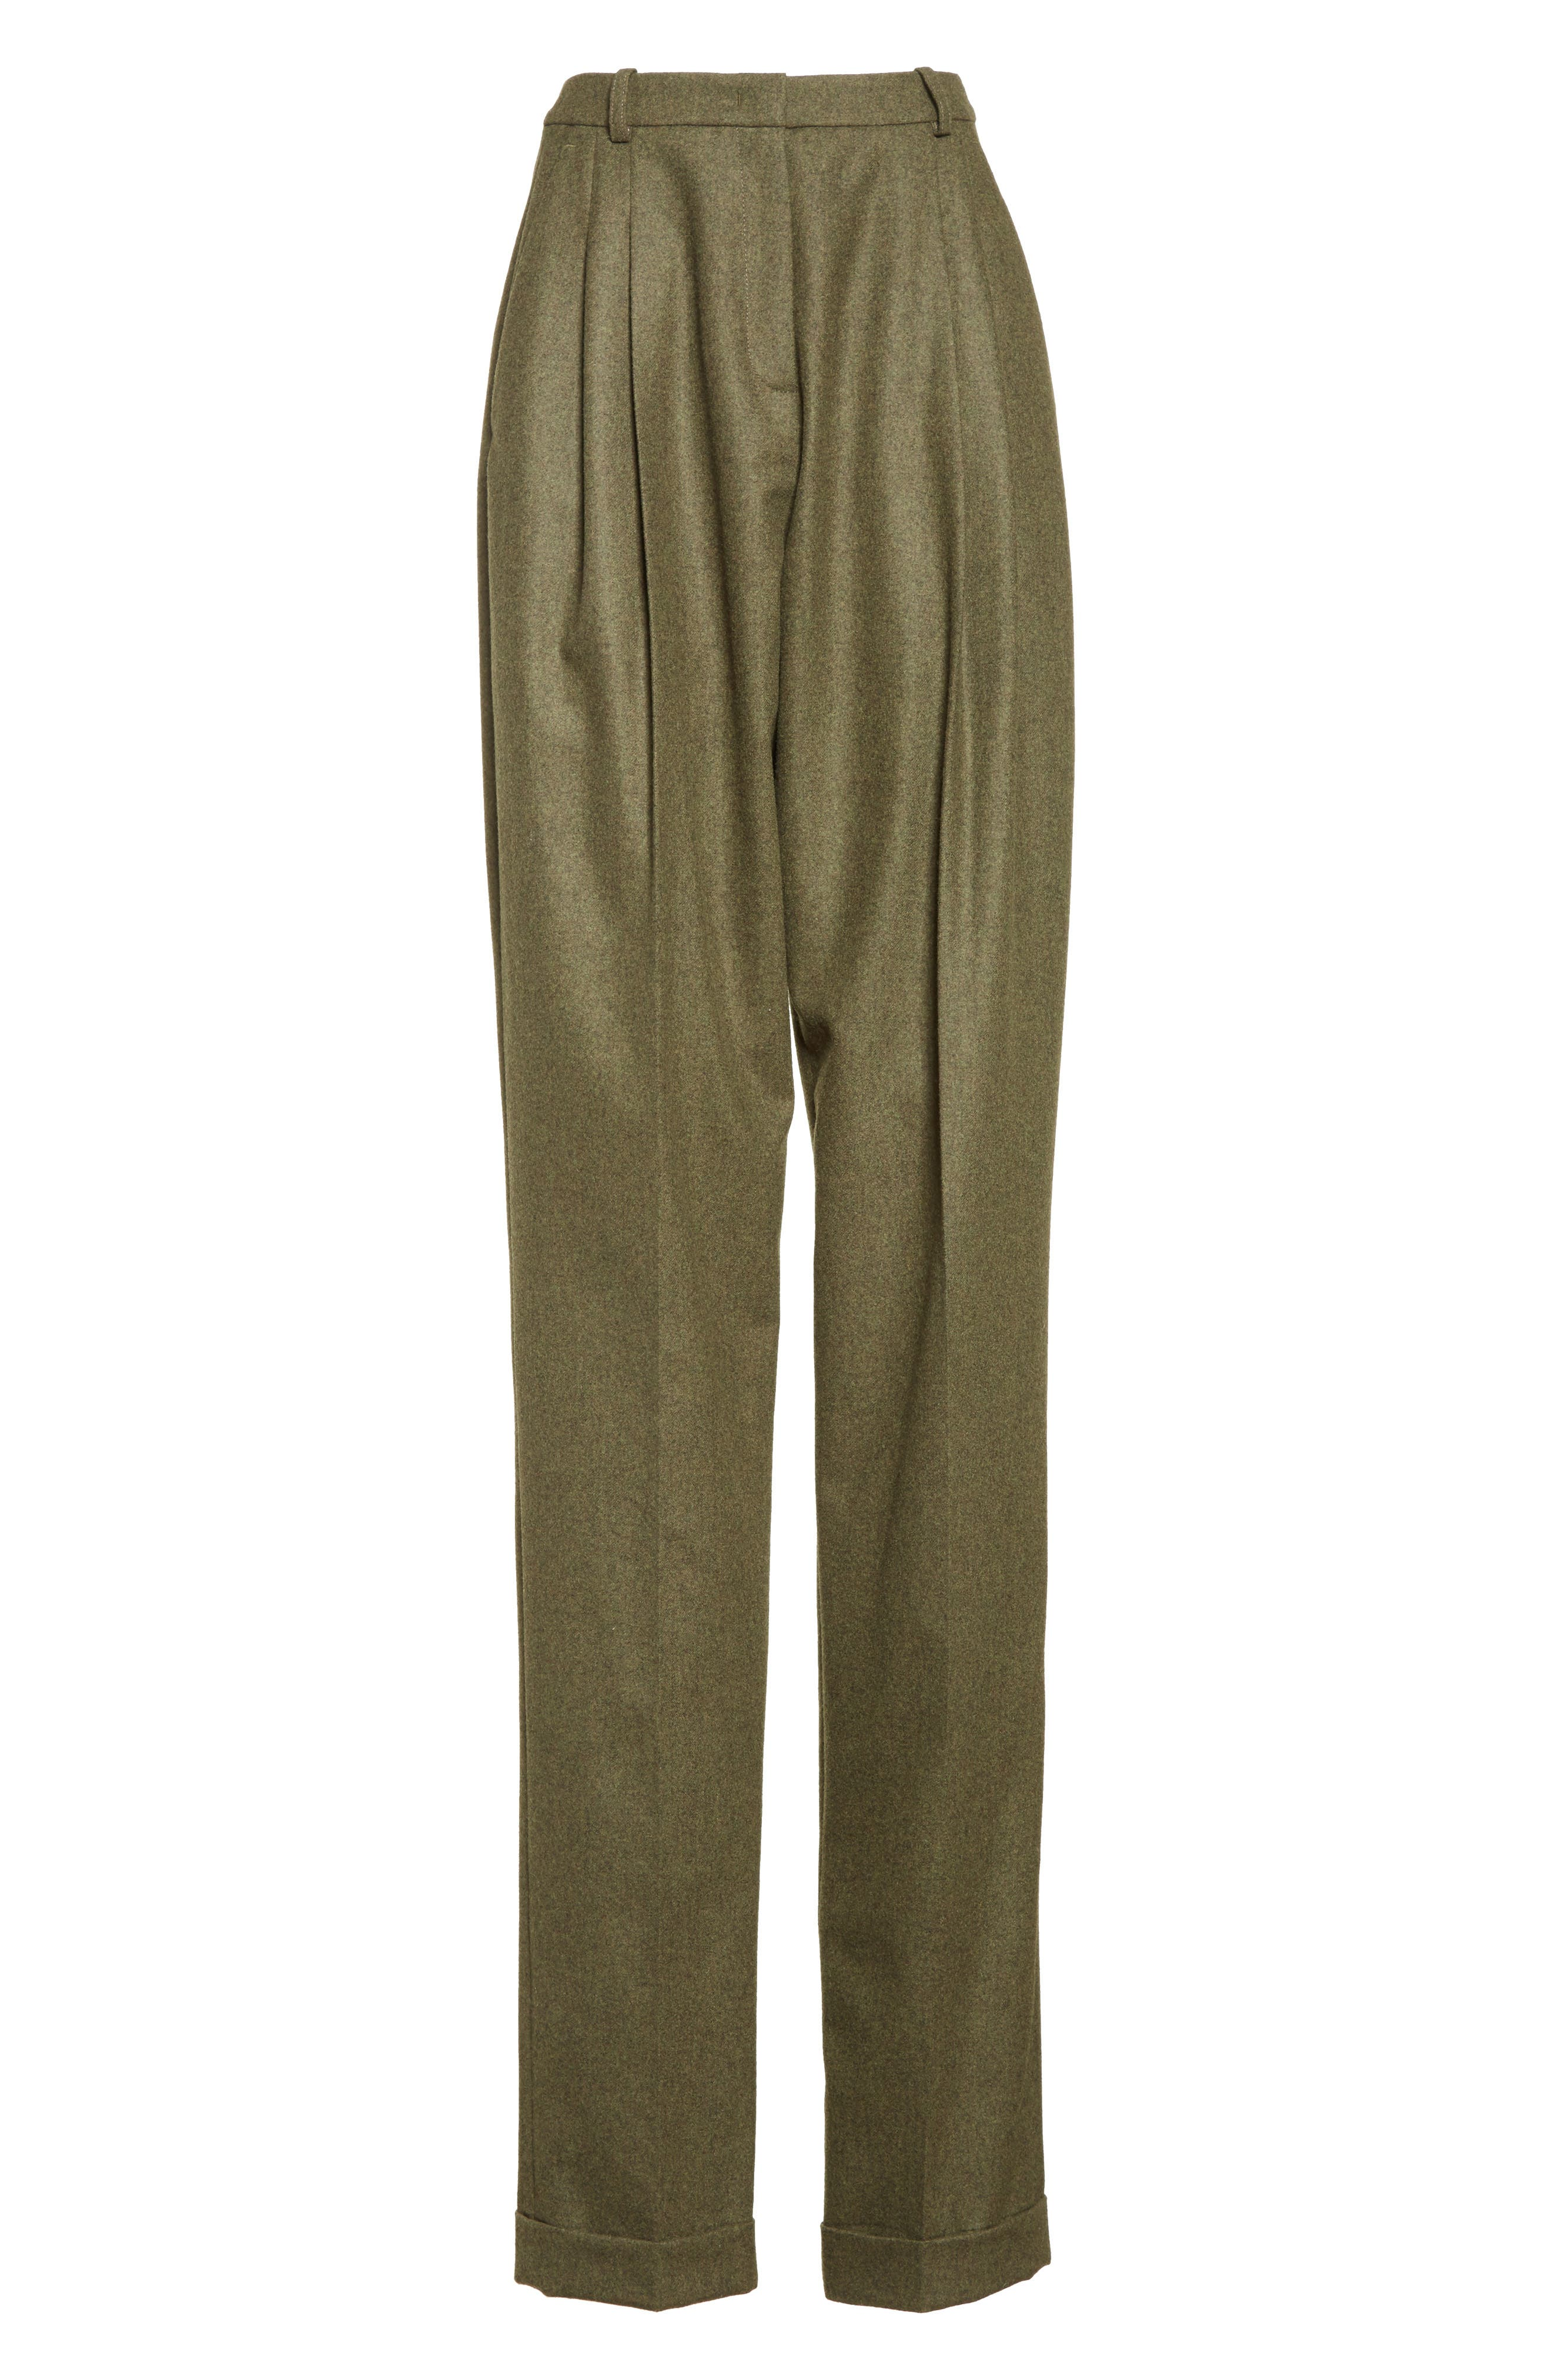 Wool & Cashmere Pleated Flannel Trousers,                             Alternate thumbnail 6, color,                             Olive Mlange